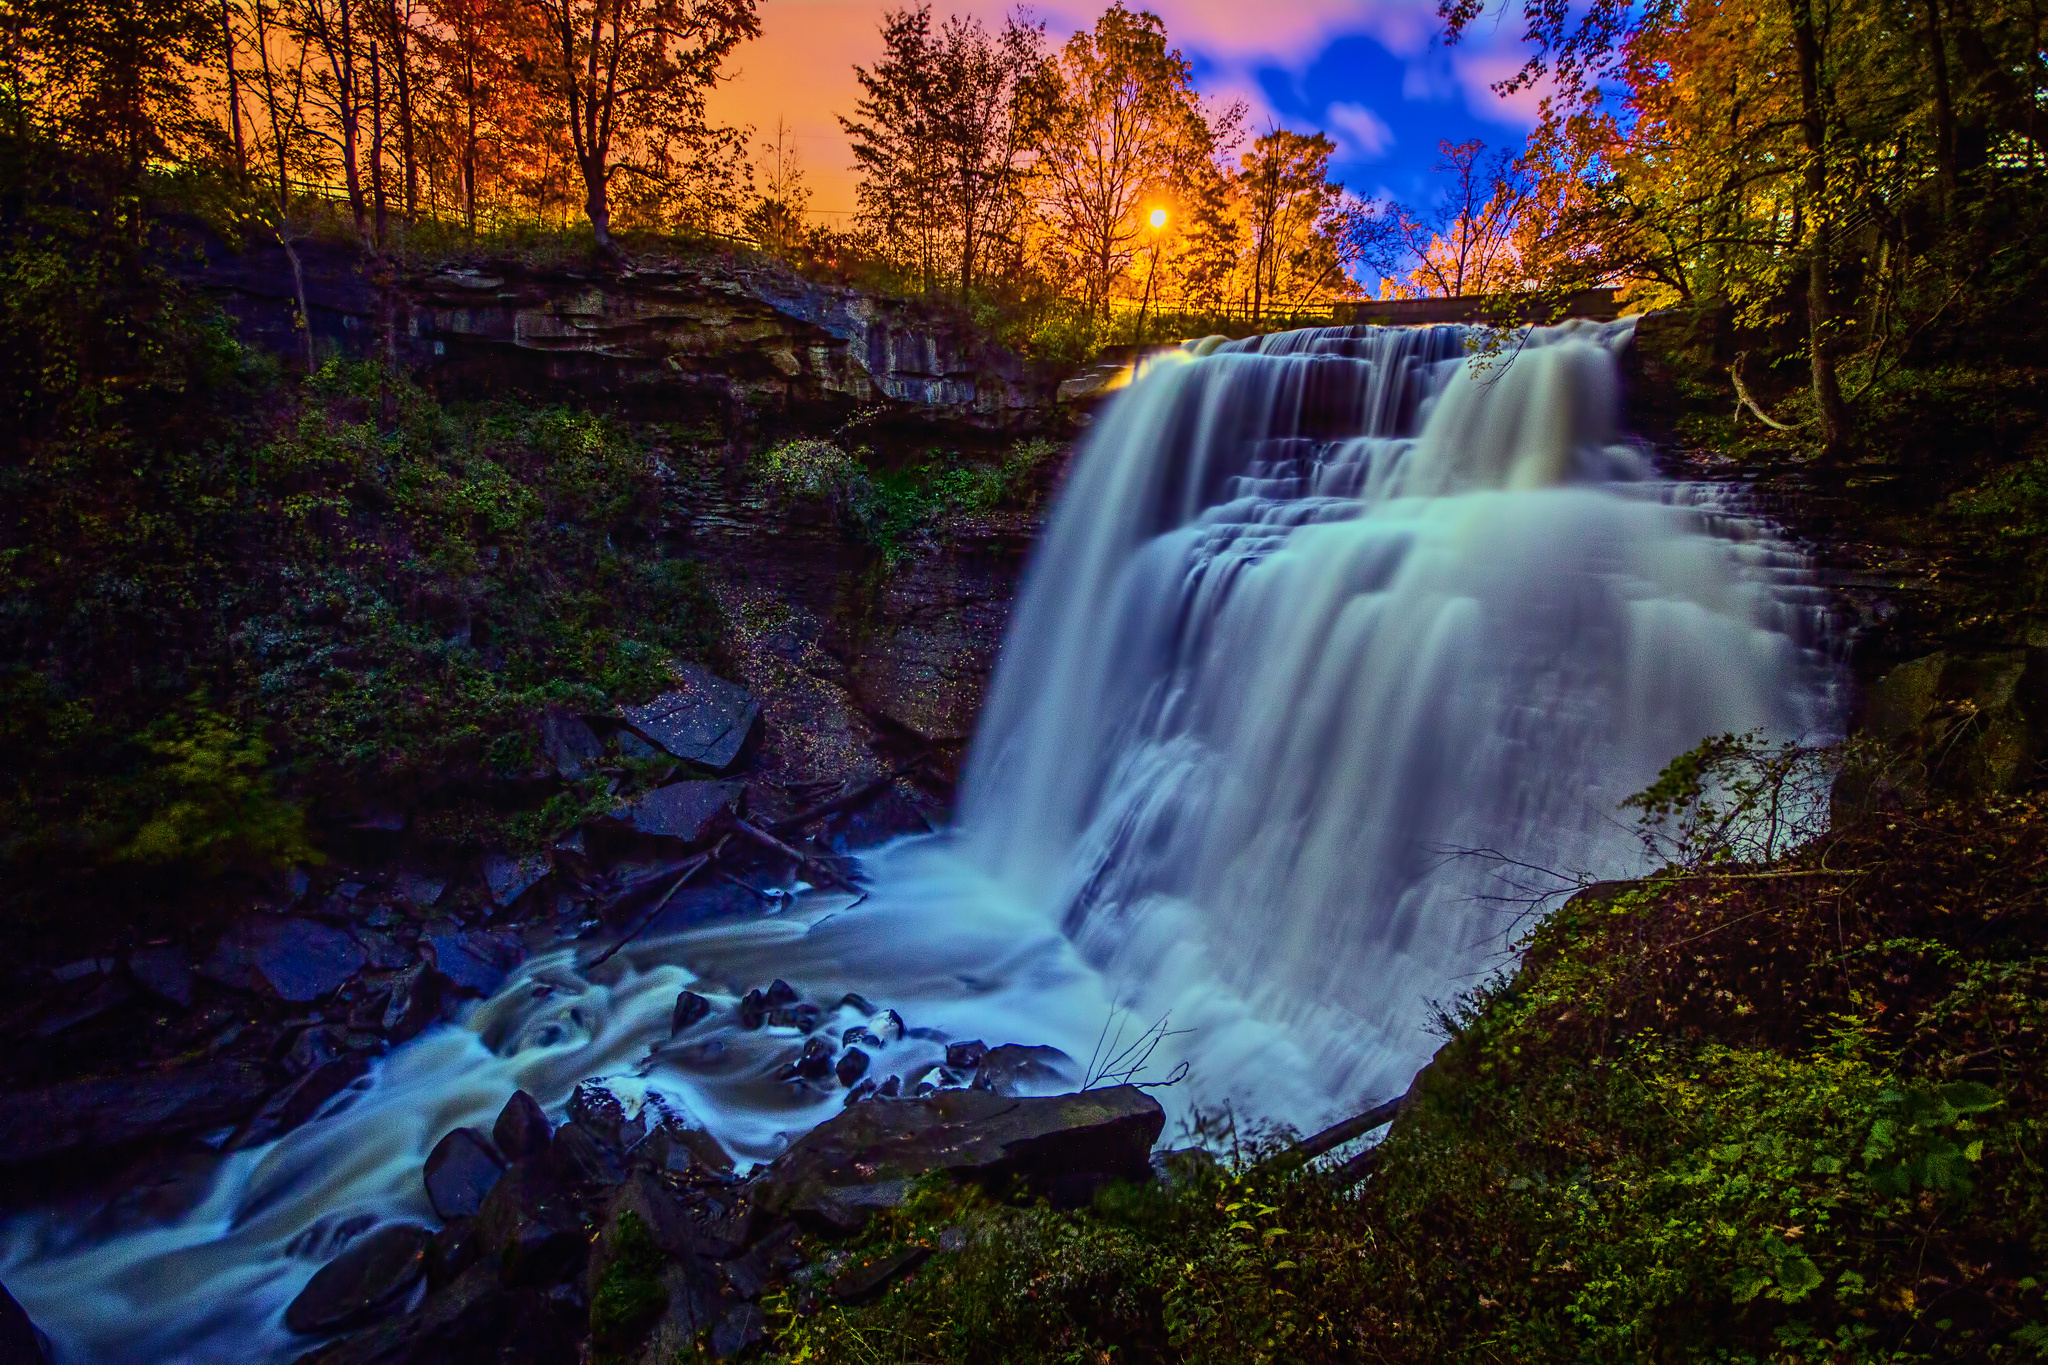 Pink Fall Desktop Wallpaper Ohio Waterfall Sunset Hdr Wallpaper 2048x1365 118289